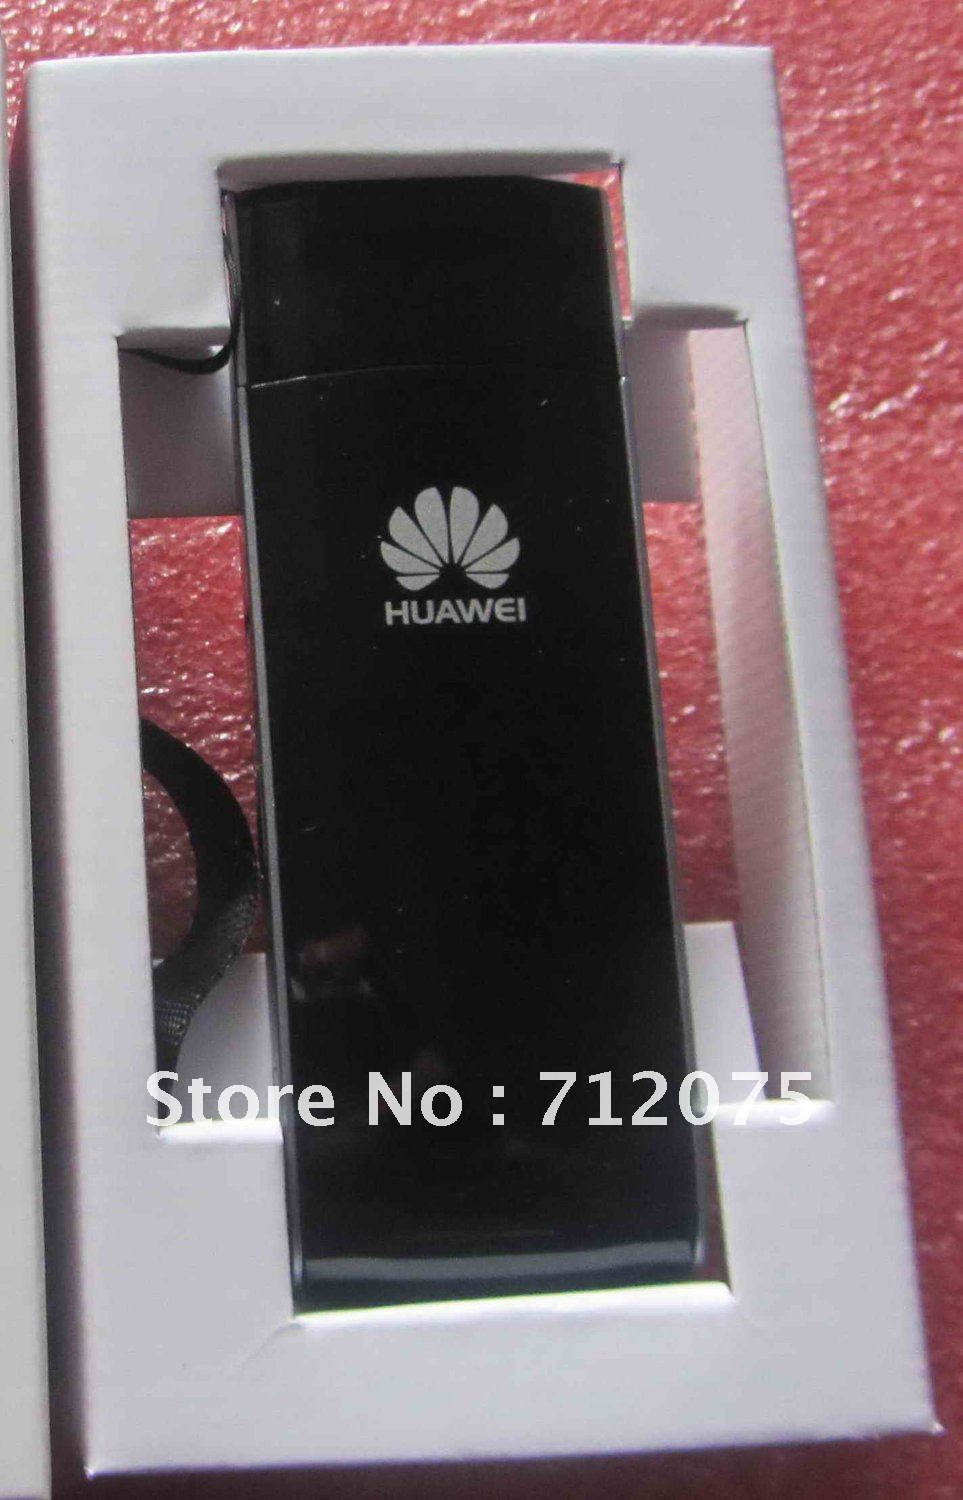 EMS/DHL Free shipping Huawei E392 4G LTE wireless Modem 100Mbps unlocked, support TDD& FDD 2600MHz